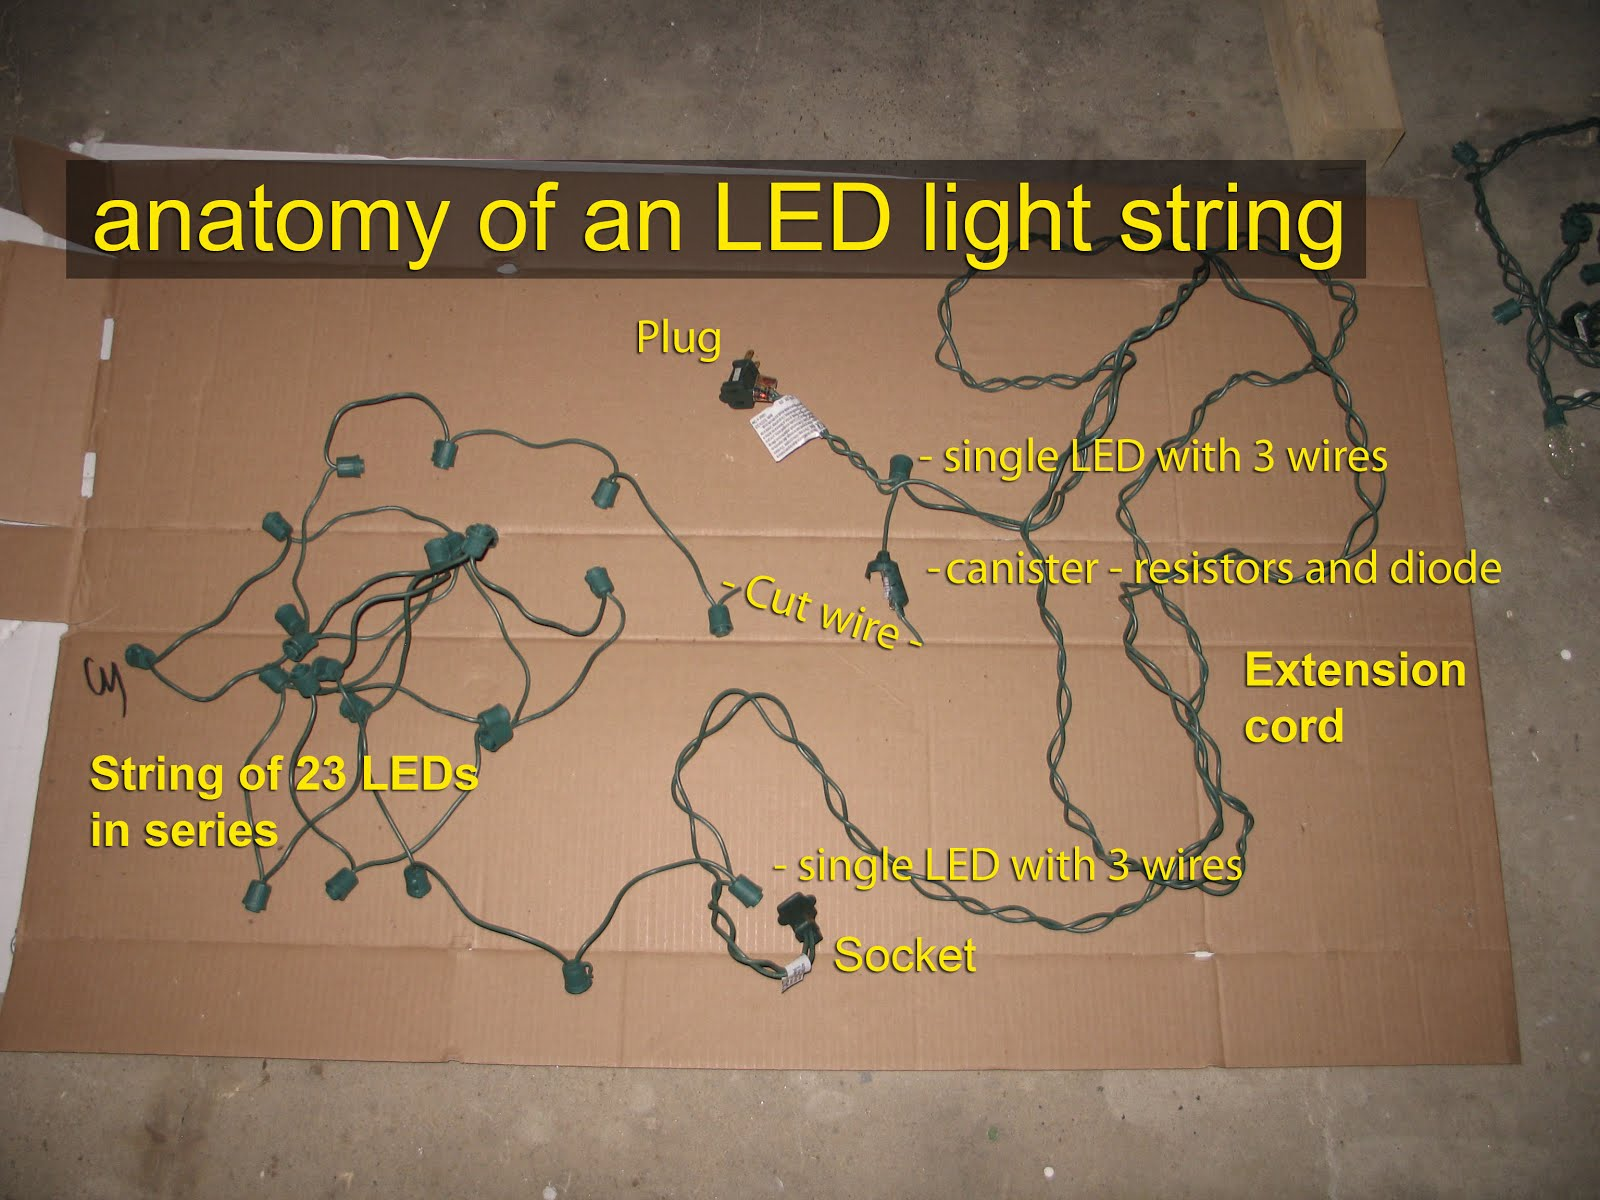 led light string anatomy1 georgesworkshop fixing led string lights wiring diagram for led light string at gsmportal.co